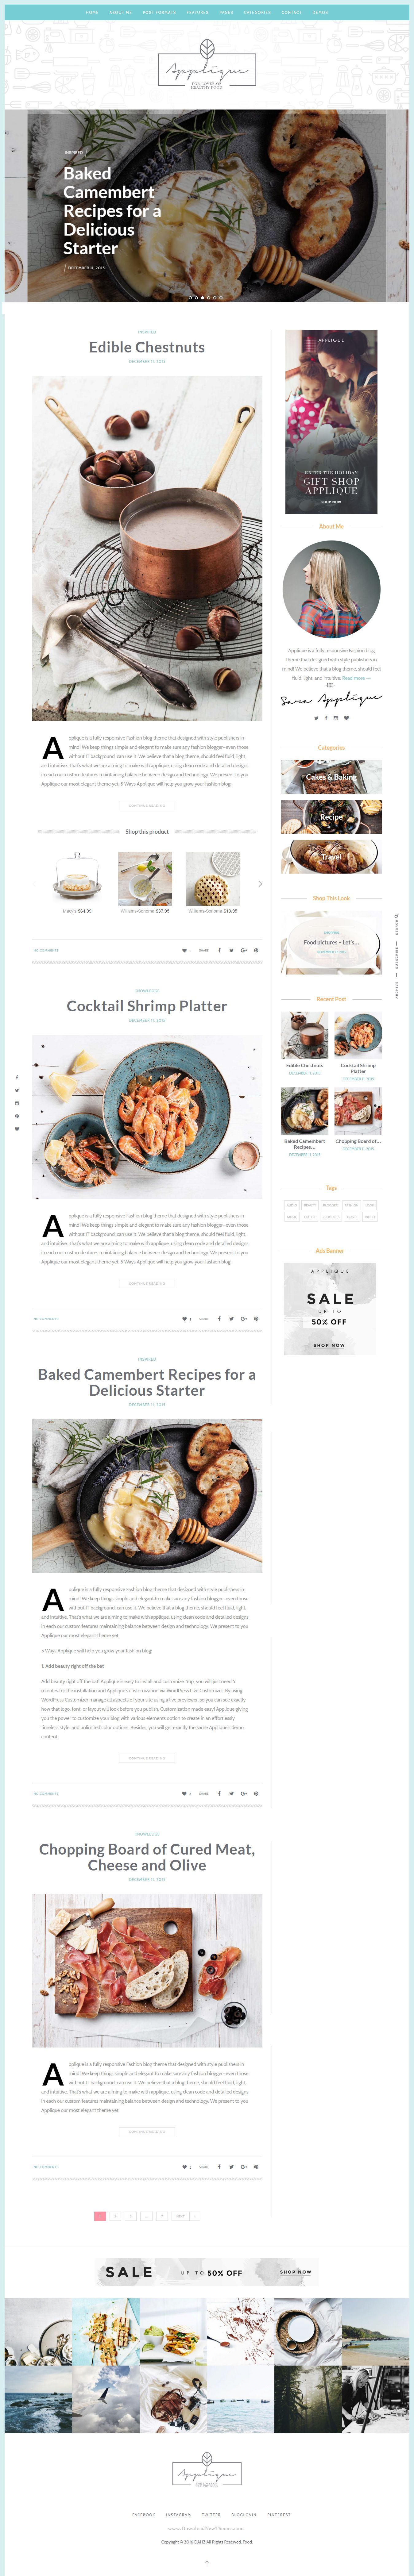 Fashion blog theme applique website themes website and blog beautifully design appique food and recipes blog website theme download forumfinder Gallery